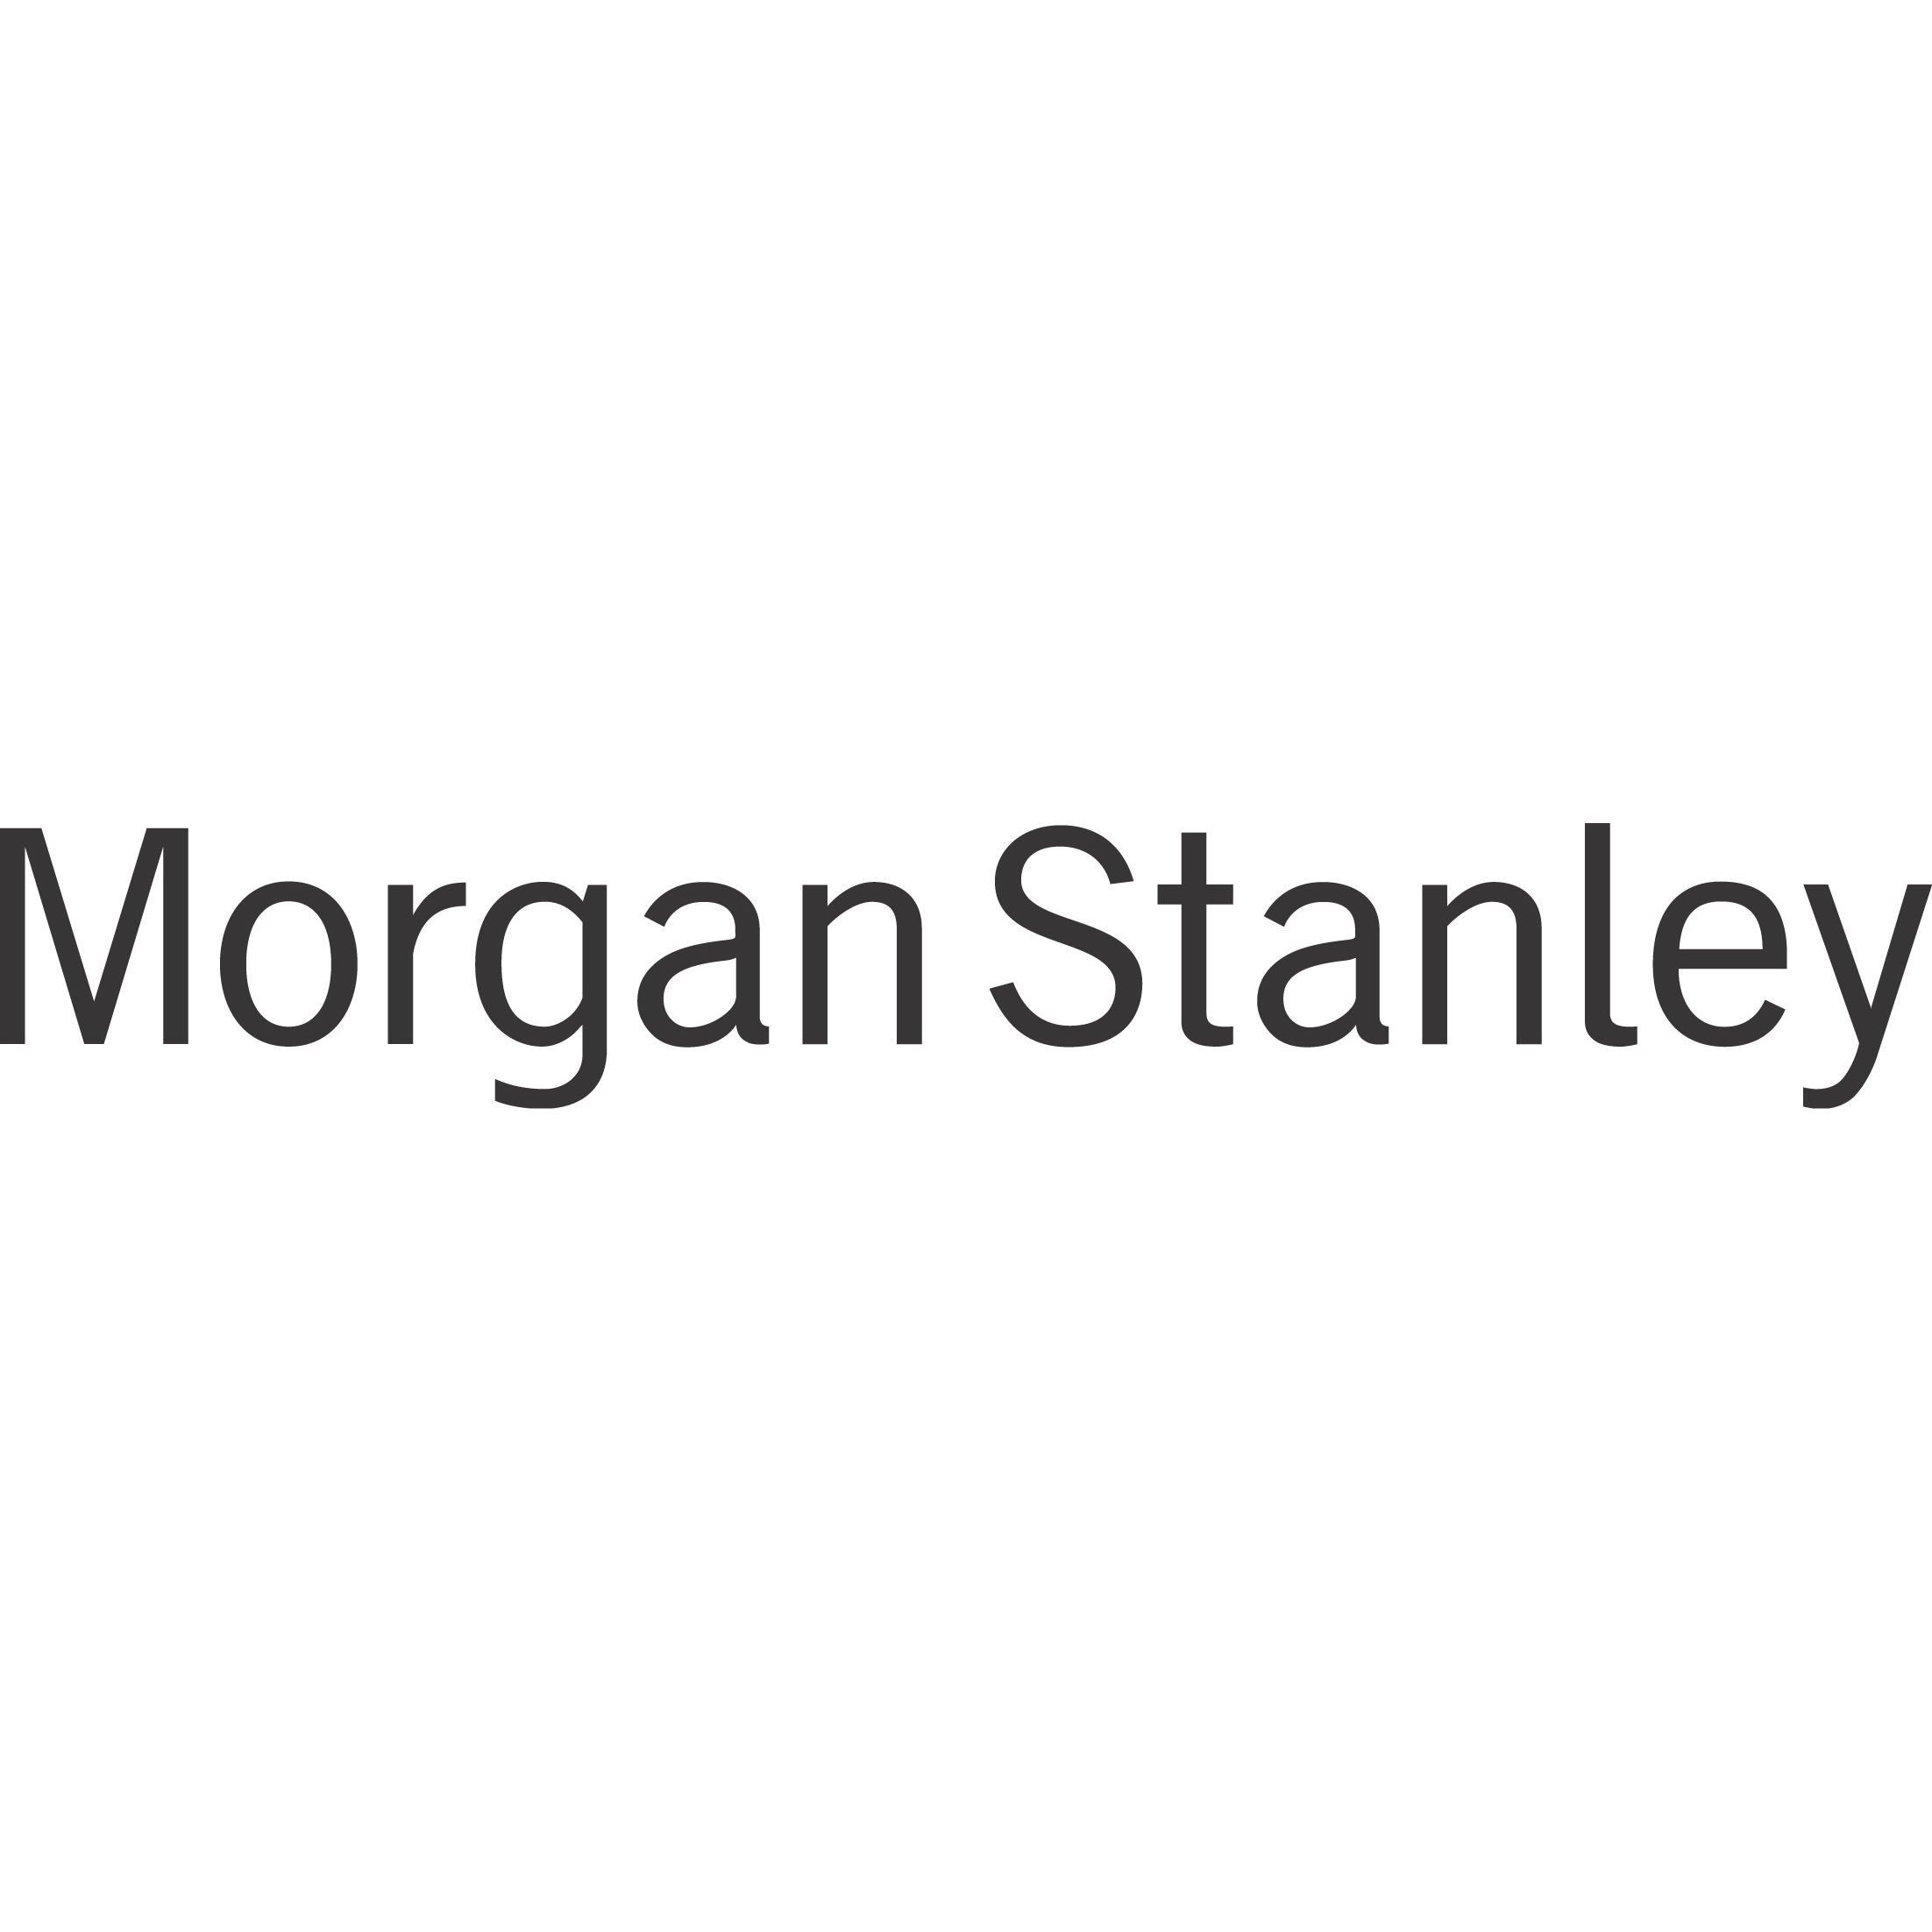 John Agnew - Morgan Stanley | Financial Advisor in Pasadena,California